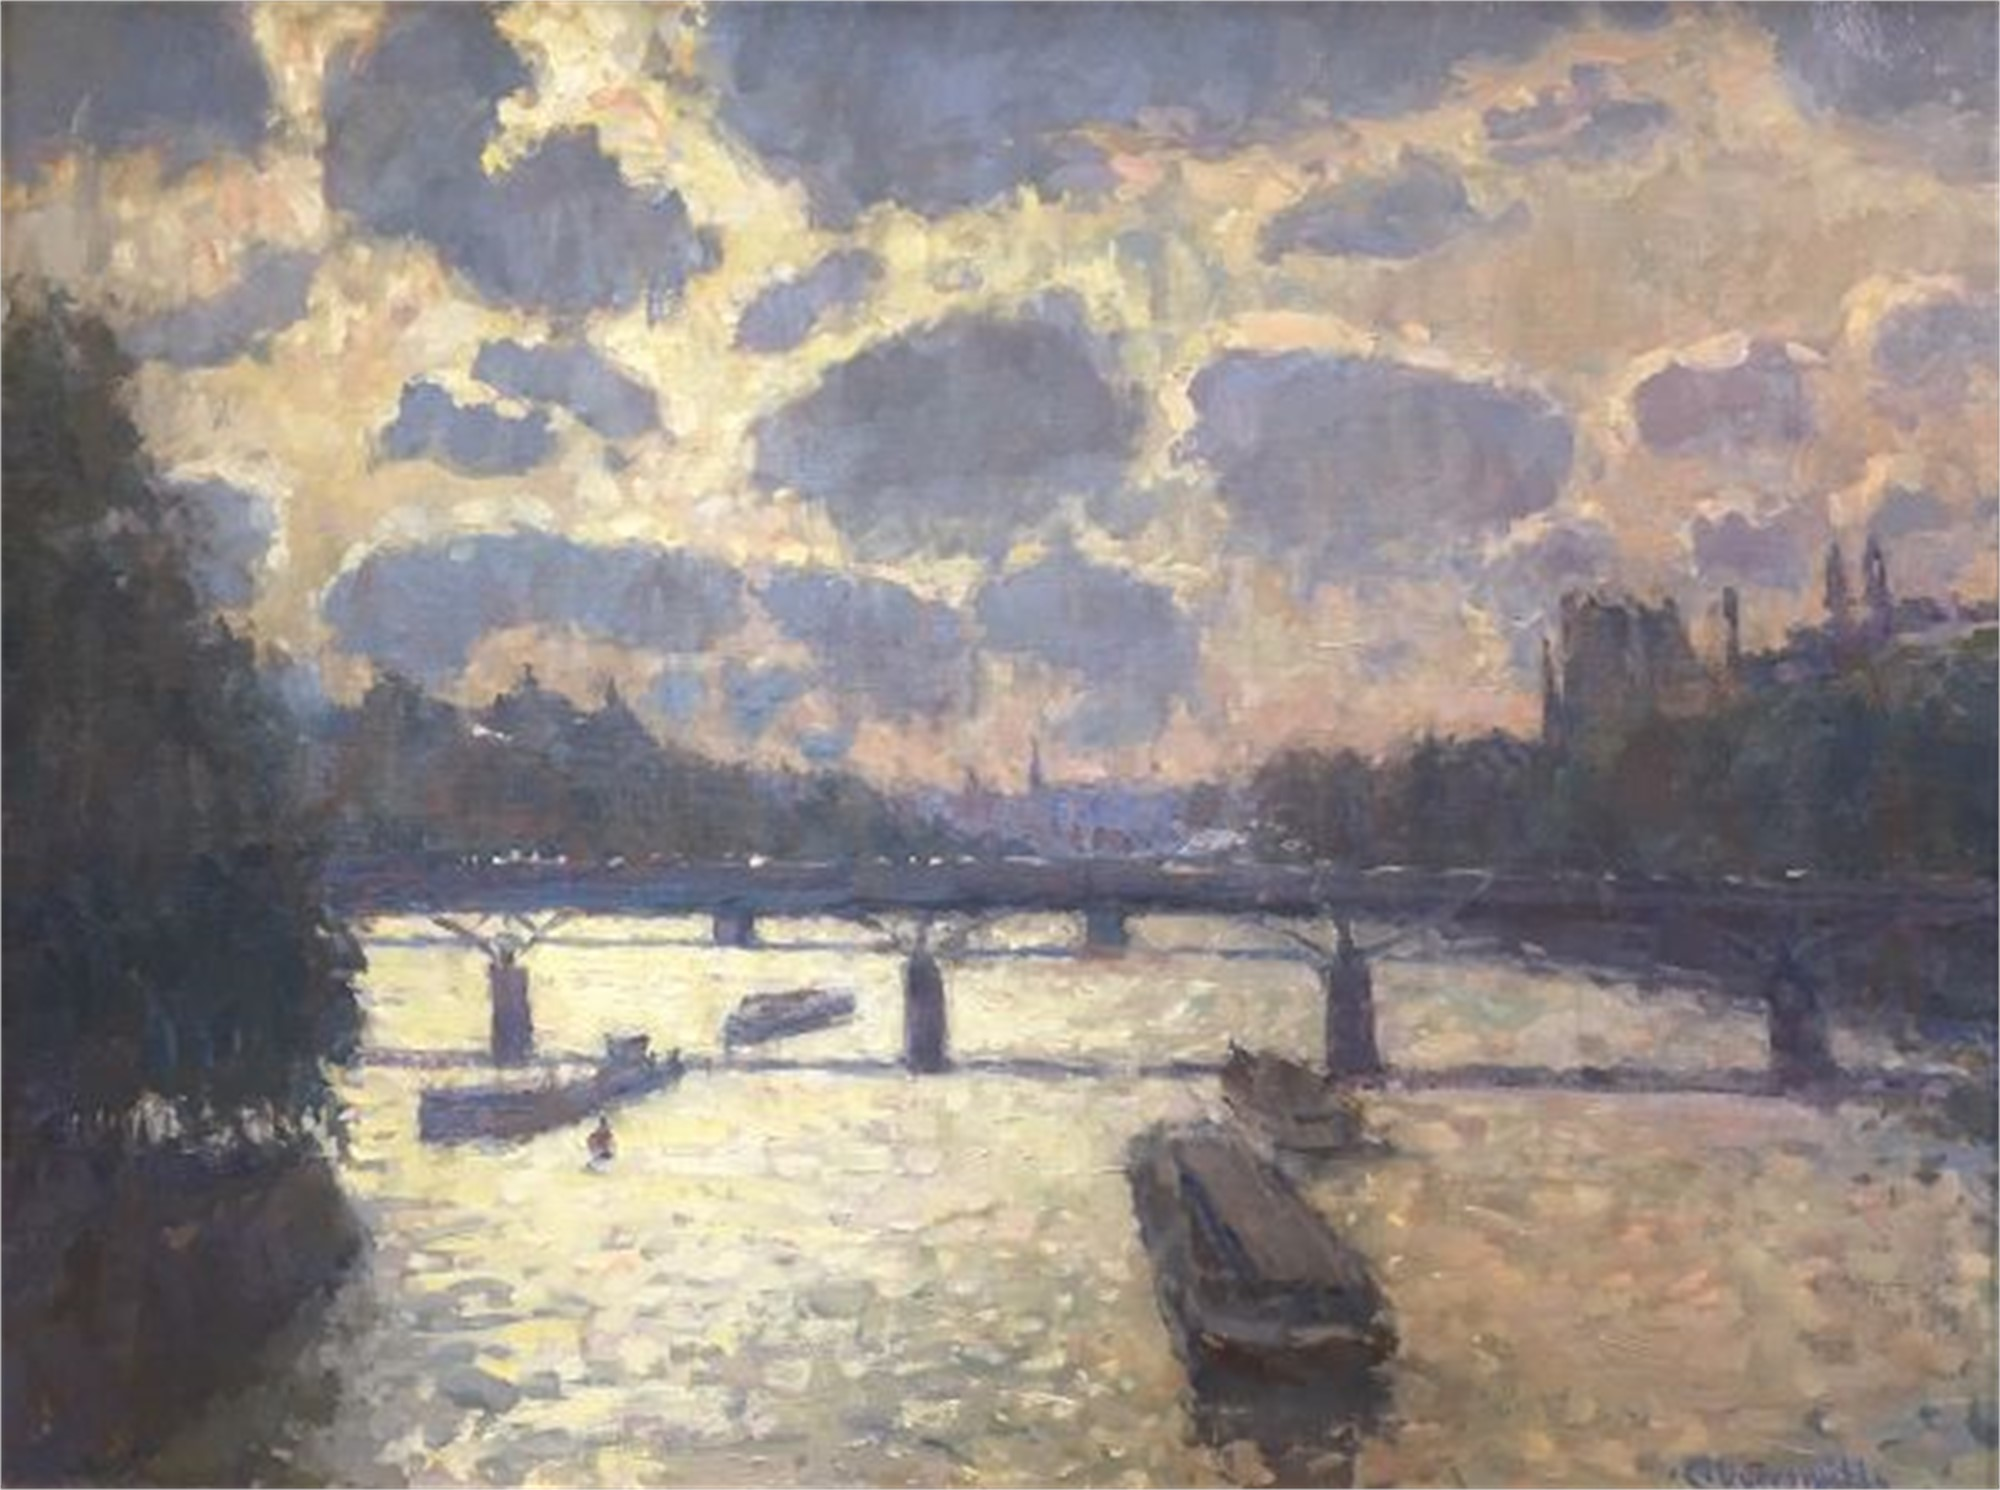 Afternoon Shimmer on the Seine by Richard Oversmith